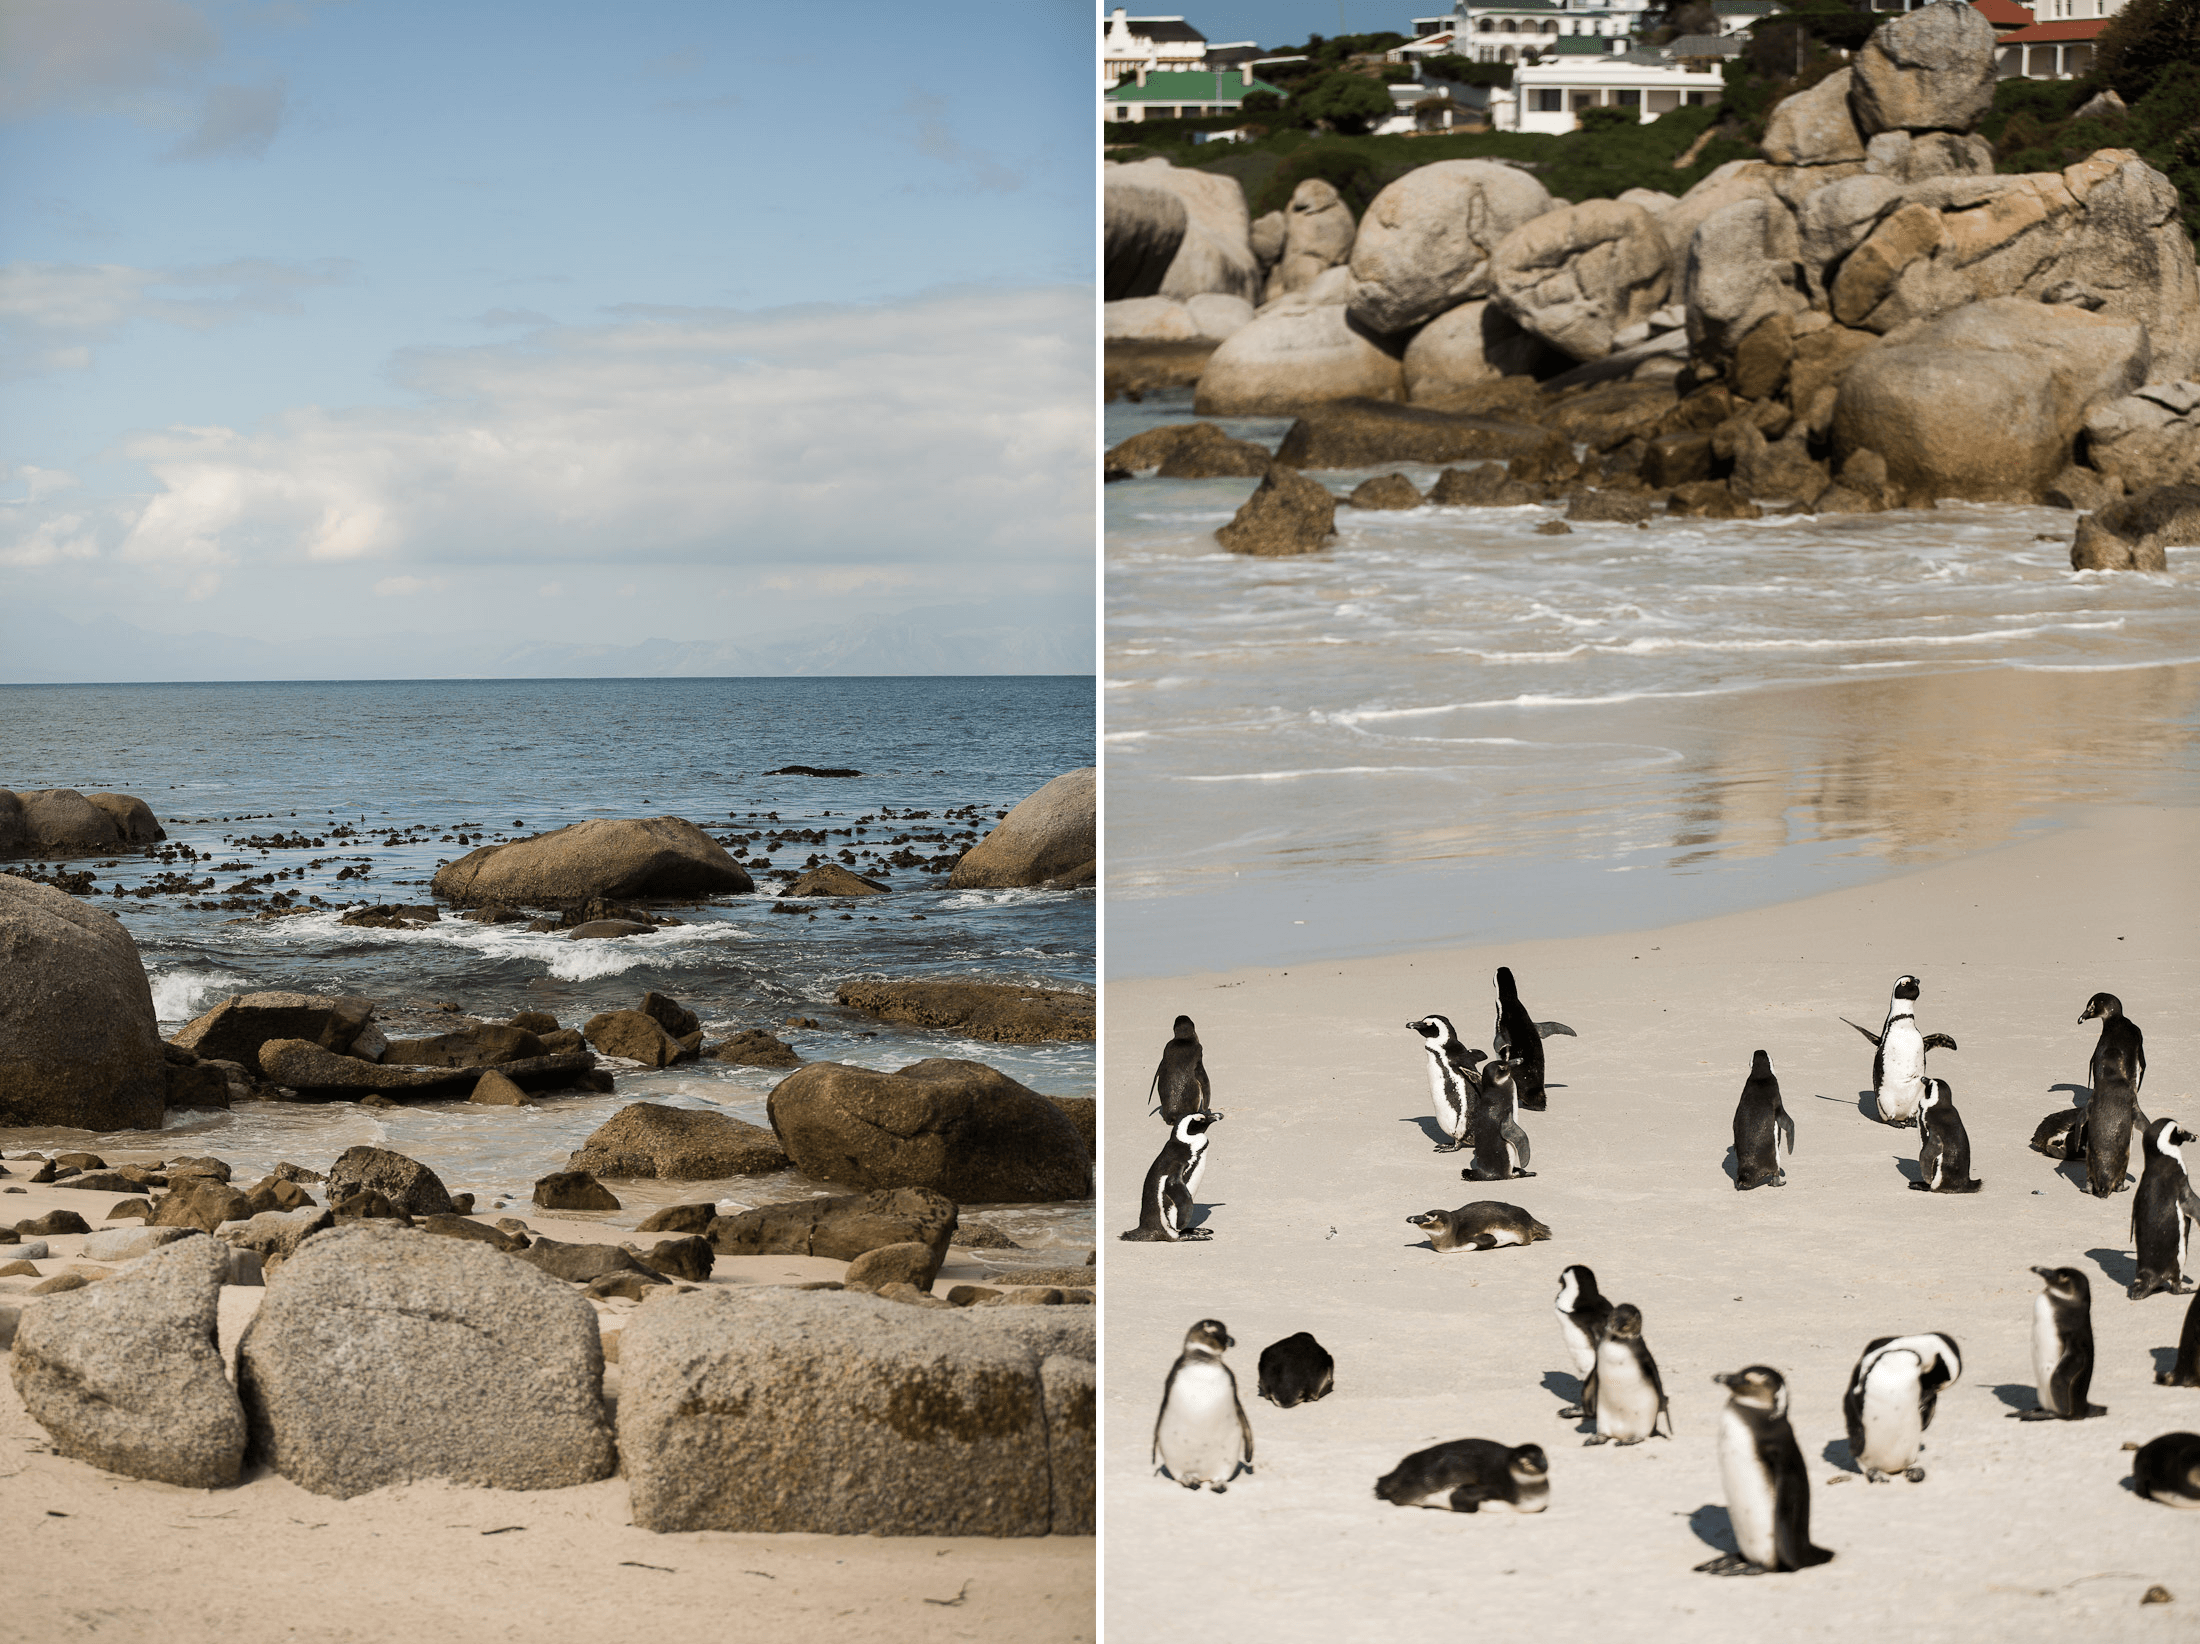 south africa cape town travel guide boulder beach penguin sanctuary sher she goes shershegoes.com (2)